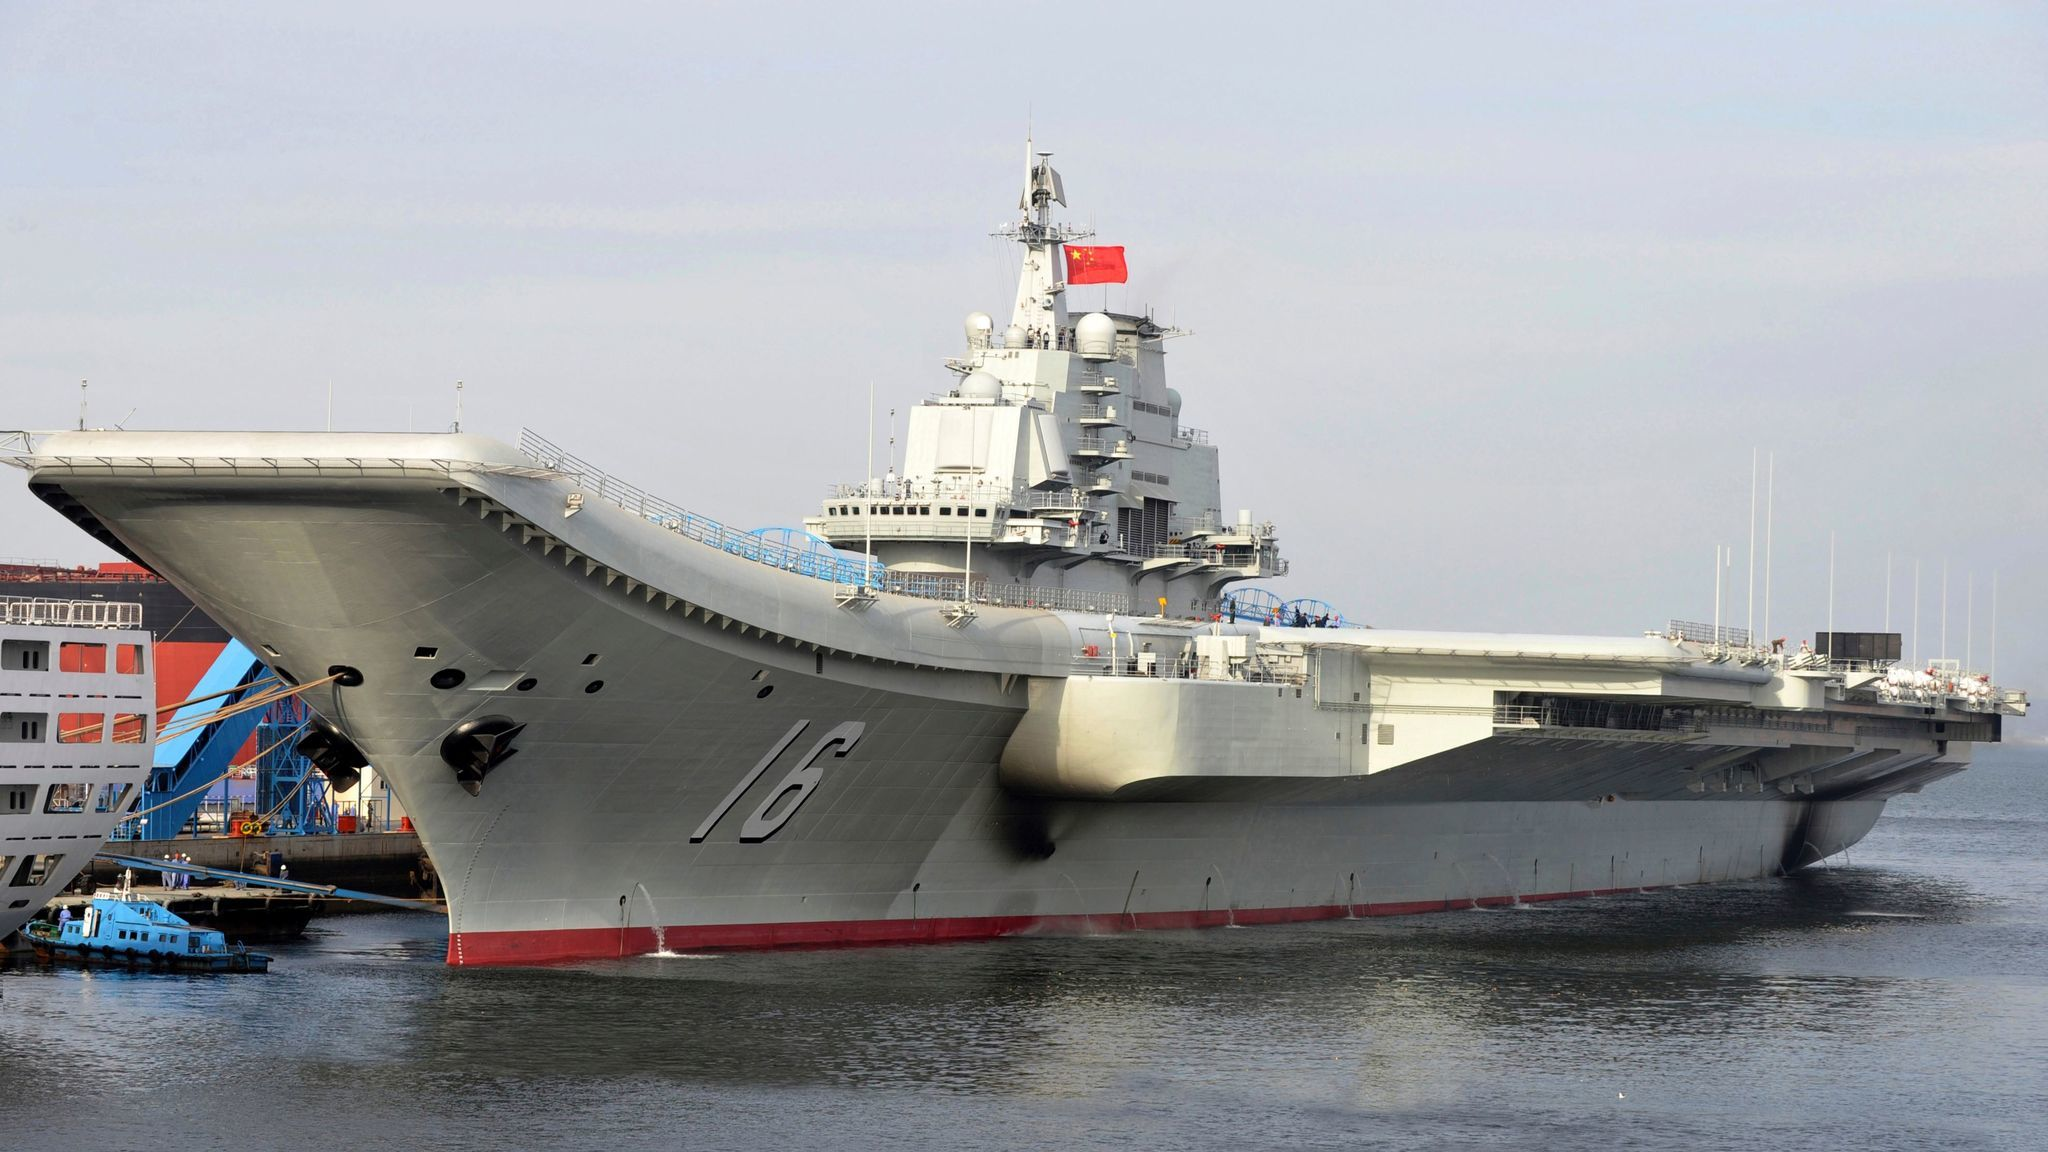 In this undated file photo released by China's Xinhua News Agency, China's aircraft carrier Liaoning berths in a Chinese port.